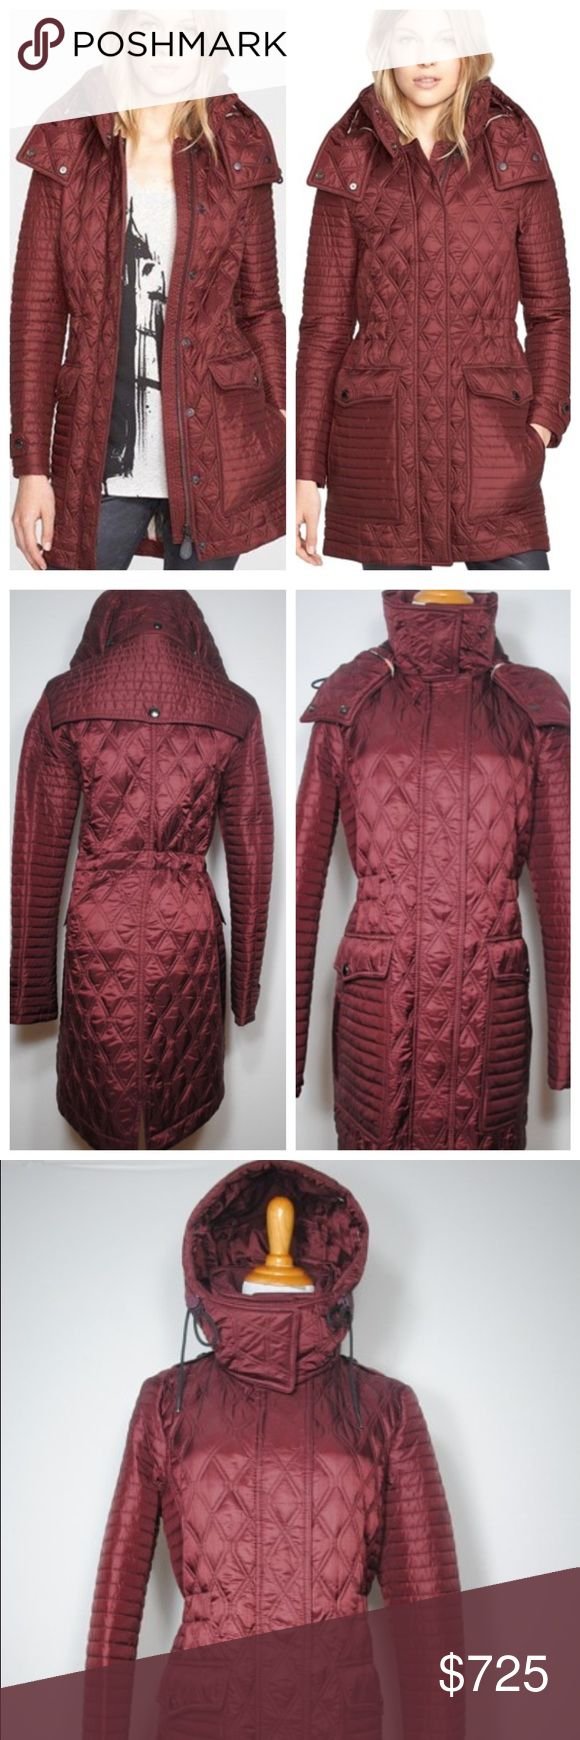 "Burberry Brit Bosdale Burgundy Coat Like new condition. A mix of channel and diamond quilting topped with a tall knit-lined stand collar for neck-warming comfort. A detachable hood adds versatile weather protection while dual-entry oversized pockets keep hands cozy and gear safely stashed. An interior drawstring at the waist keeps the look trim and shapely. 32"" length (size Medium). Hidden front zip/snap closure. Detachable hood. Snap-tab cuffs. Woven check quilted lining, with 100%…"